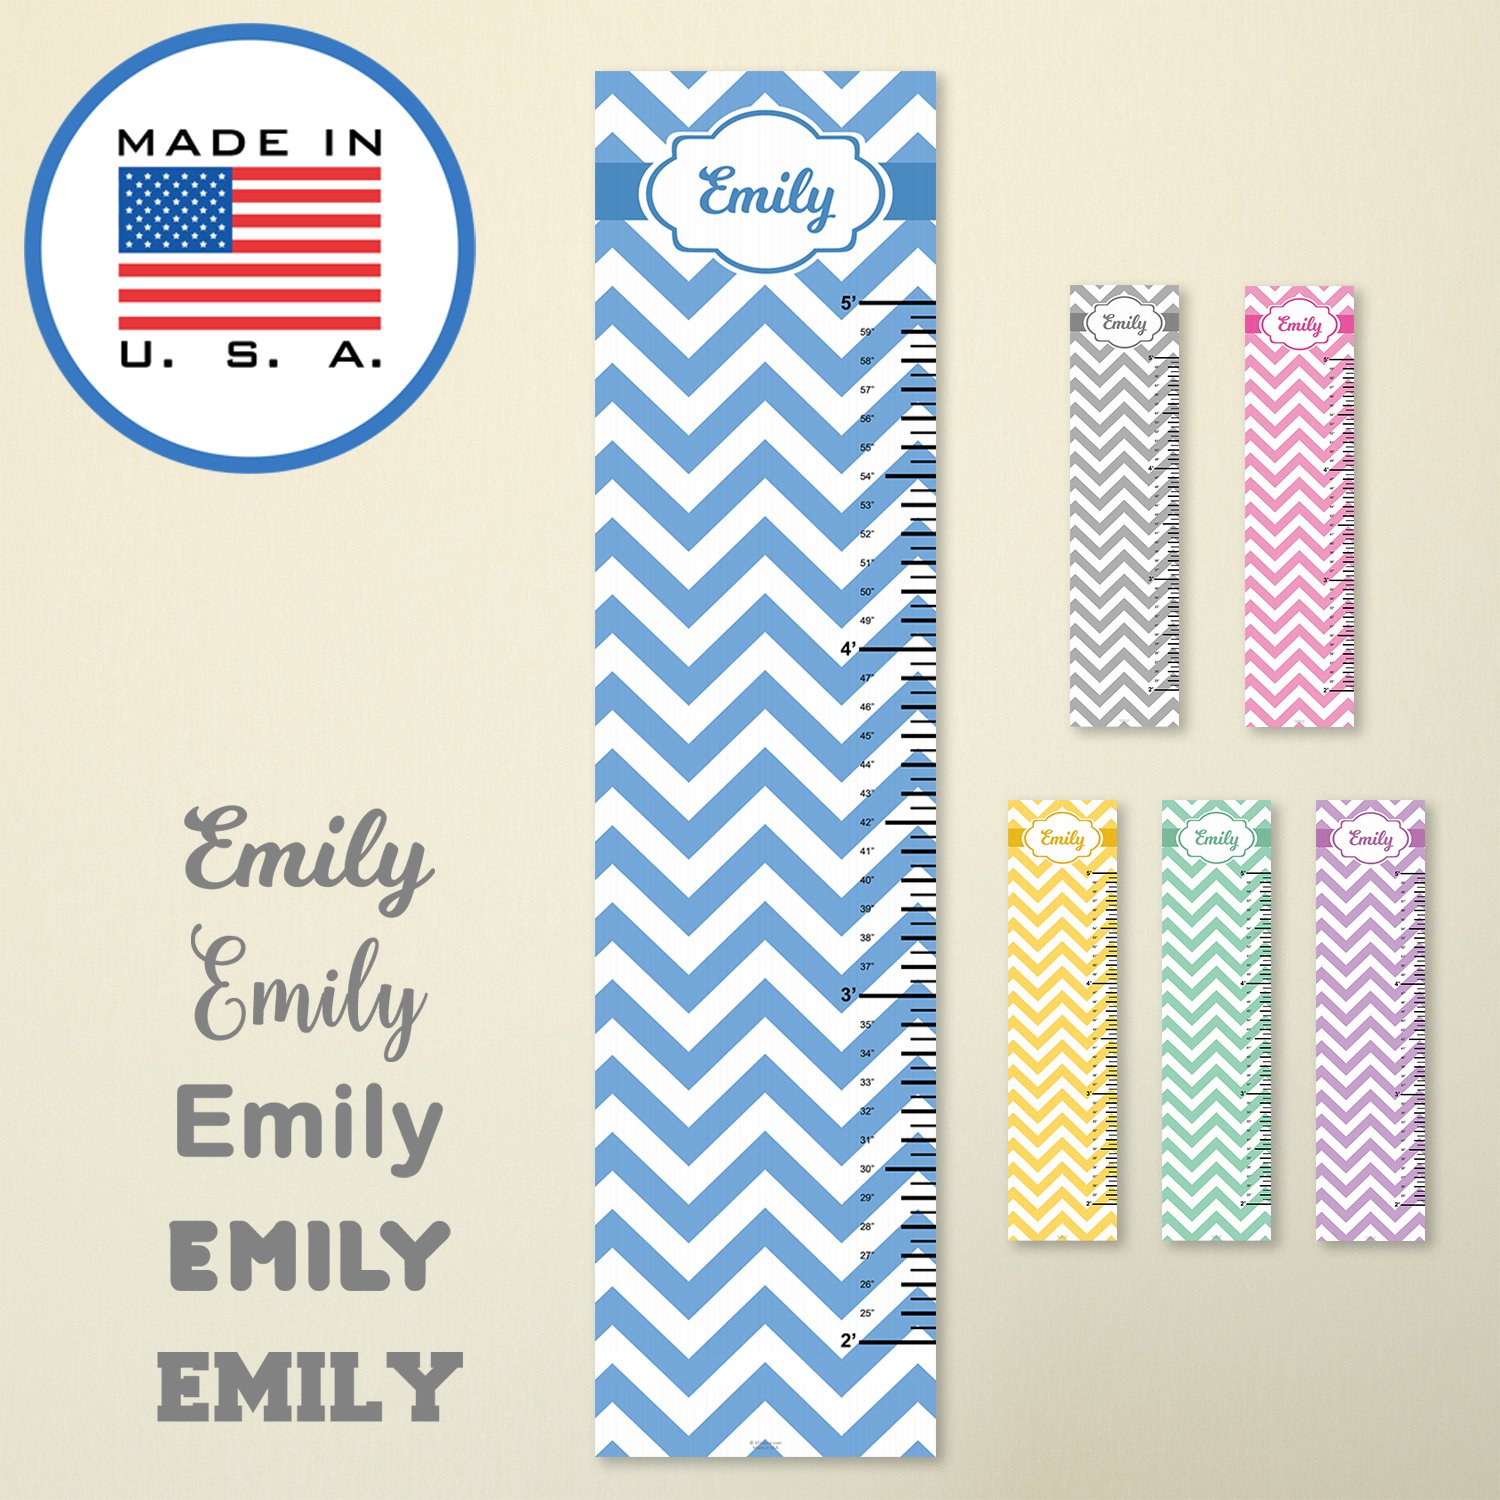 321Done Personalized Hanging Growth Chart, Blue Chevron with Name, Height Ruler Measurement, Vinyl Banner Nursery Wall Decor Baby, Made in USA